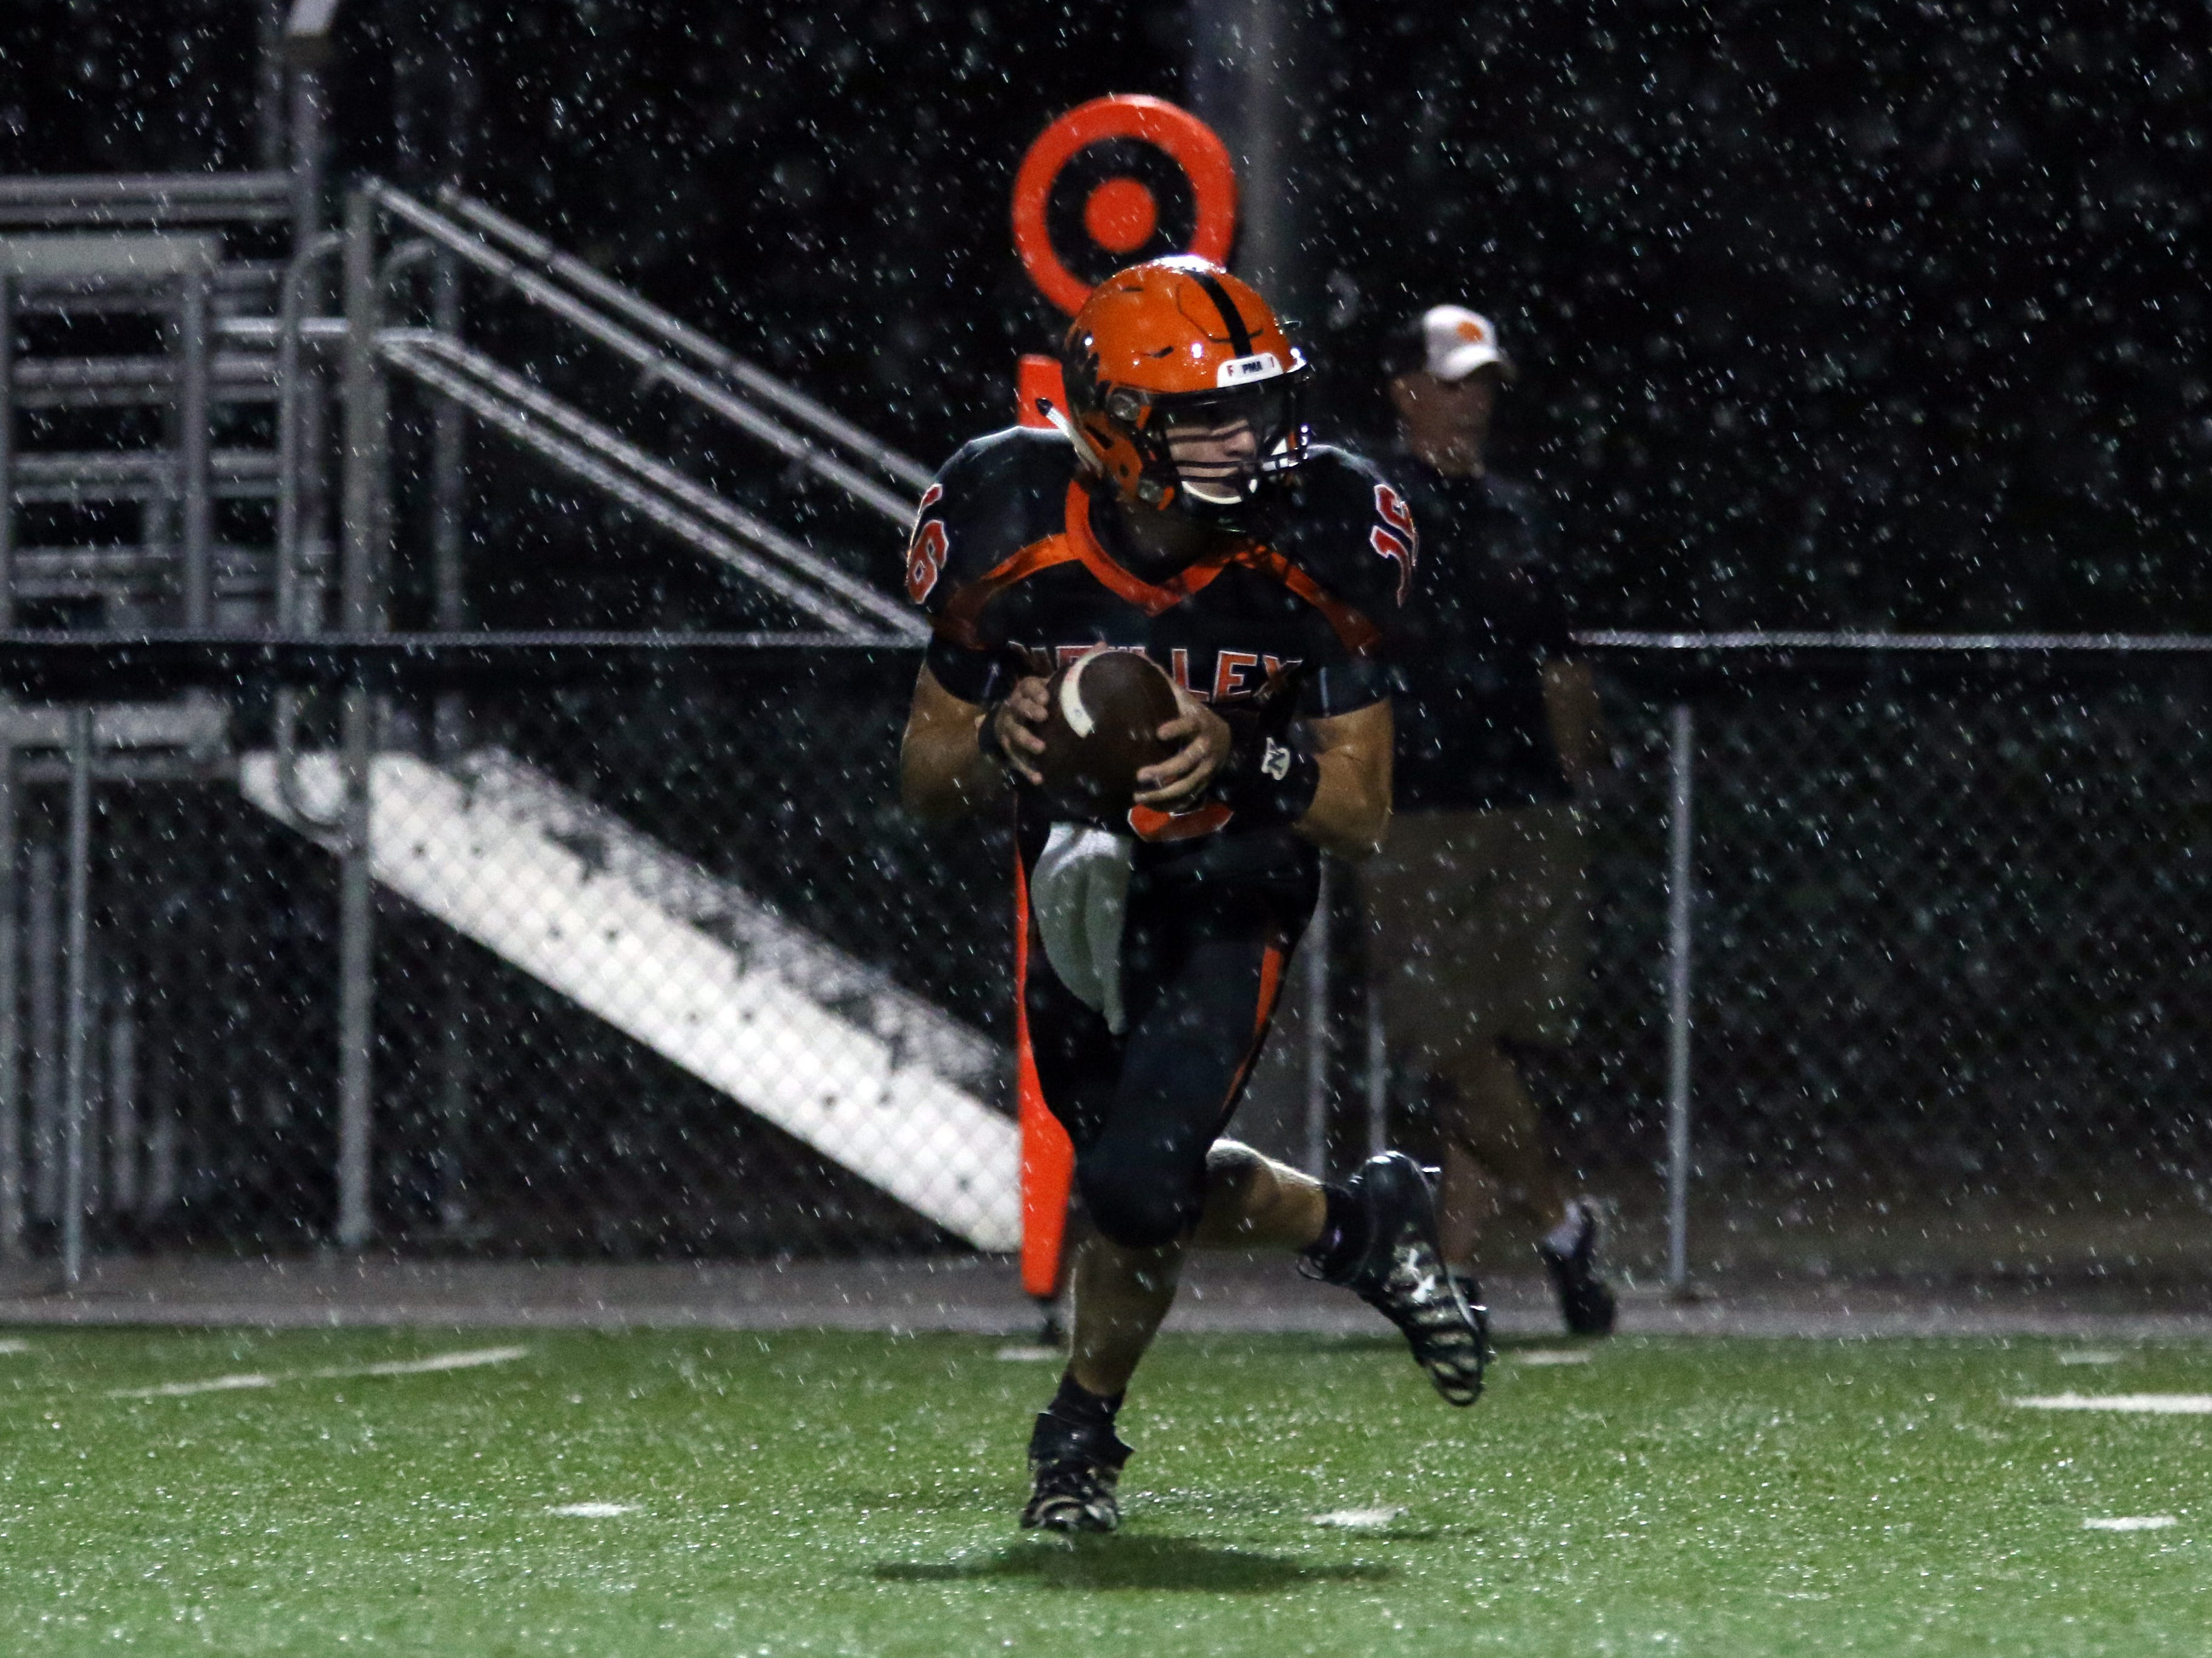 New Lexington's Logyn Ratliff rolls out of the pocket against Coshocton in the rain.